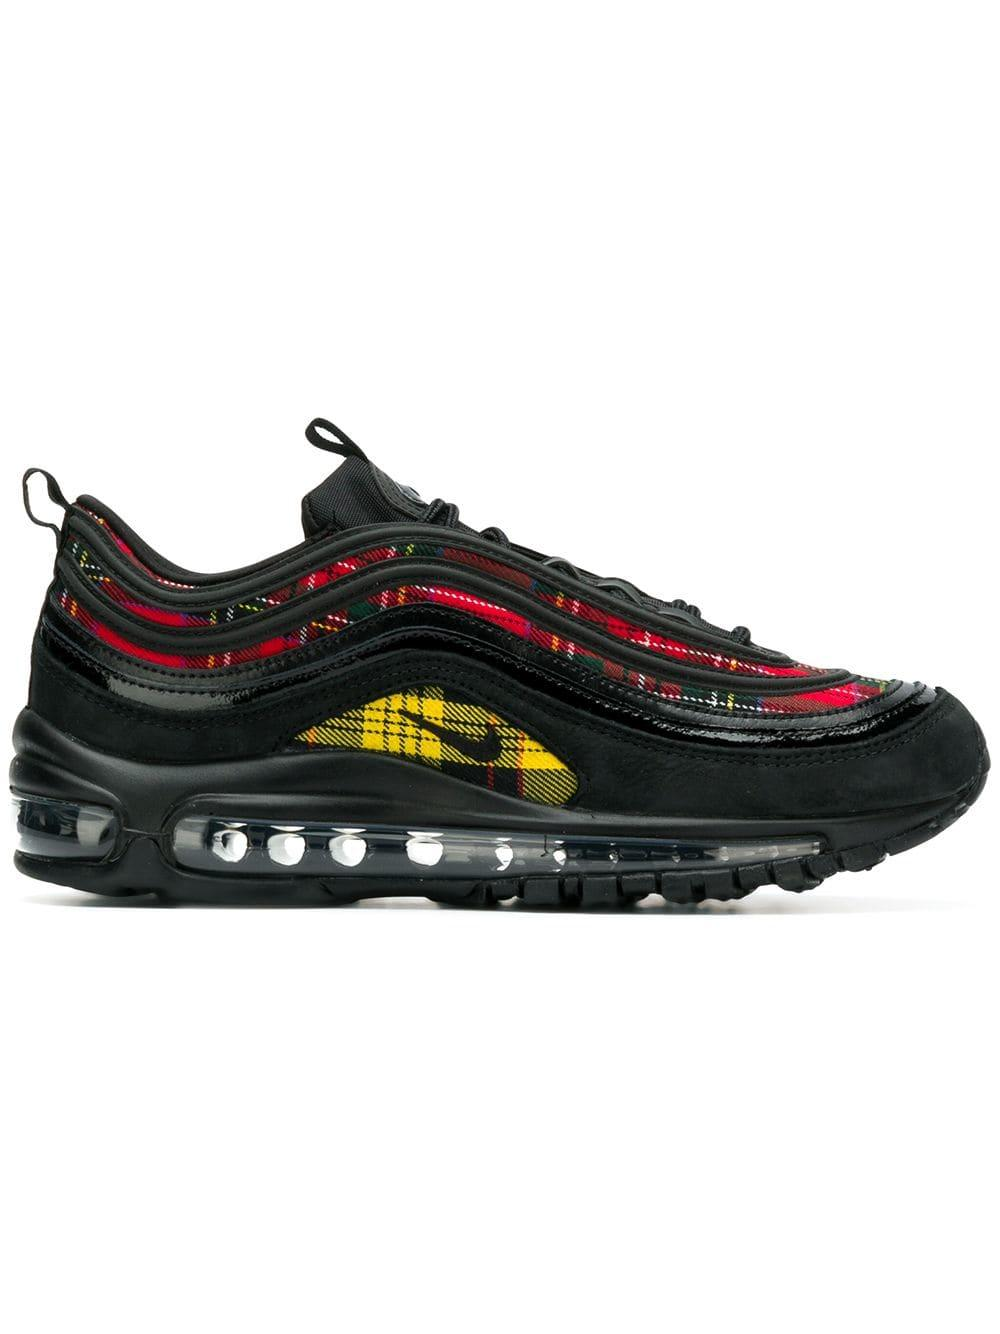 new product c0d41 e92ad Nike Women s Air Max 97 Se Tartan Casual Shoes, Black